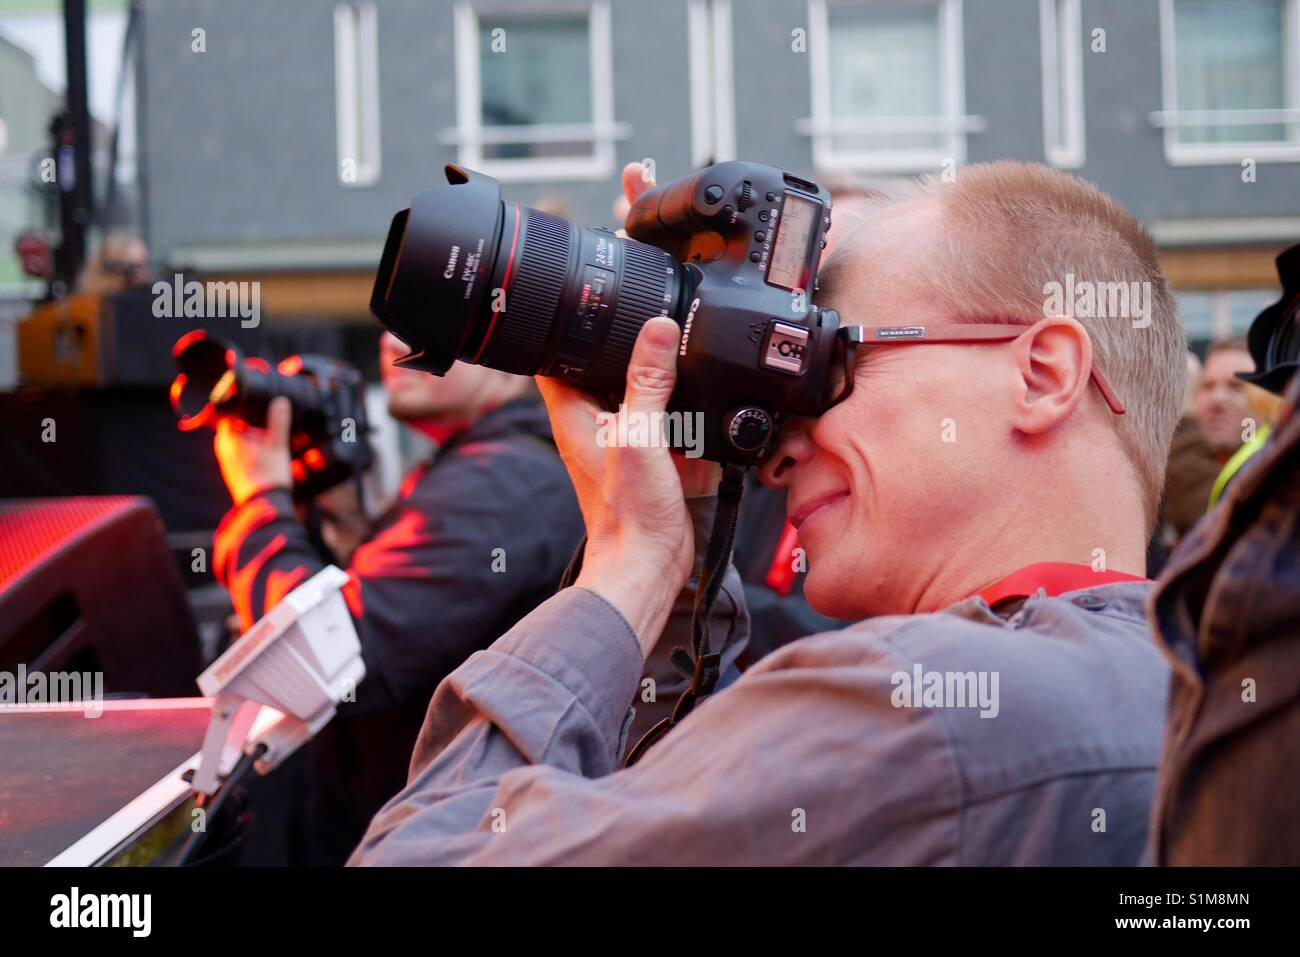 Photographer aiming Camera at  stage of Air Guitar World Championships in Oulu Finland - Stock Image